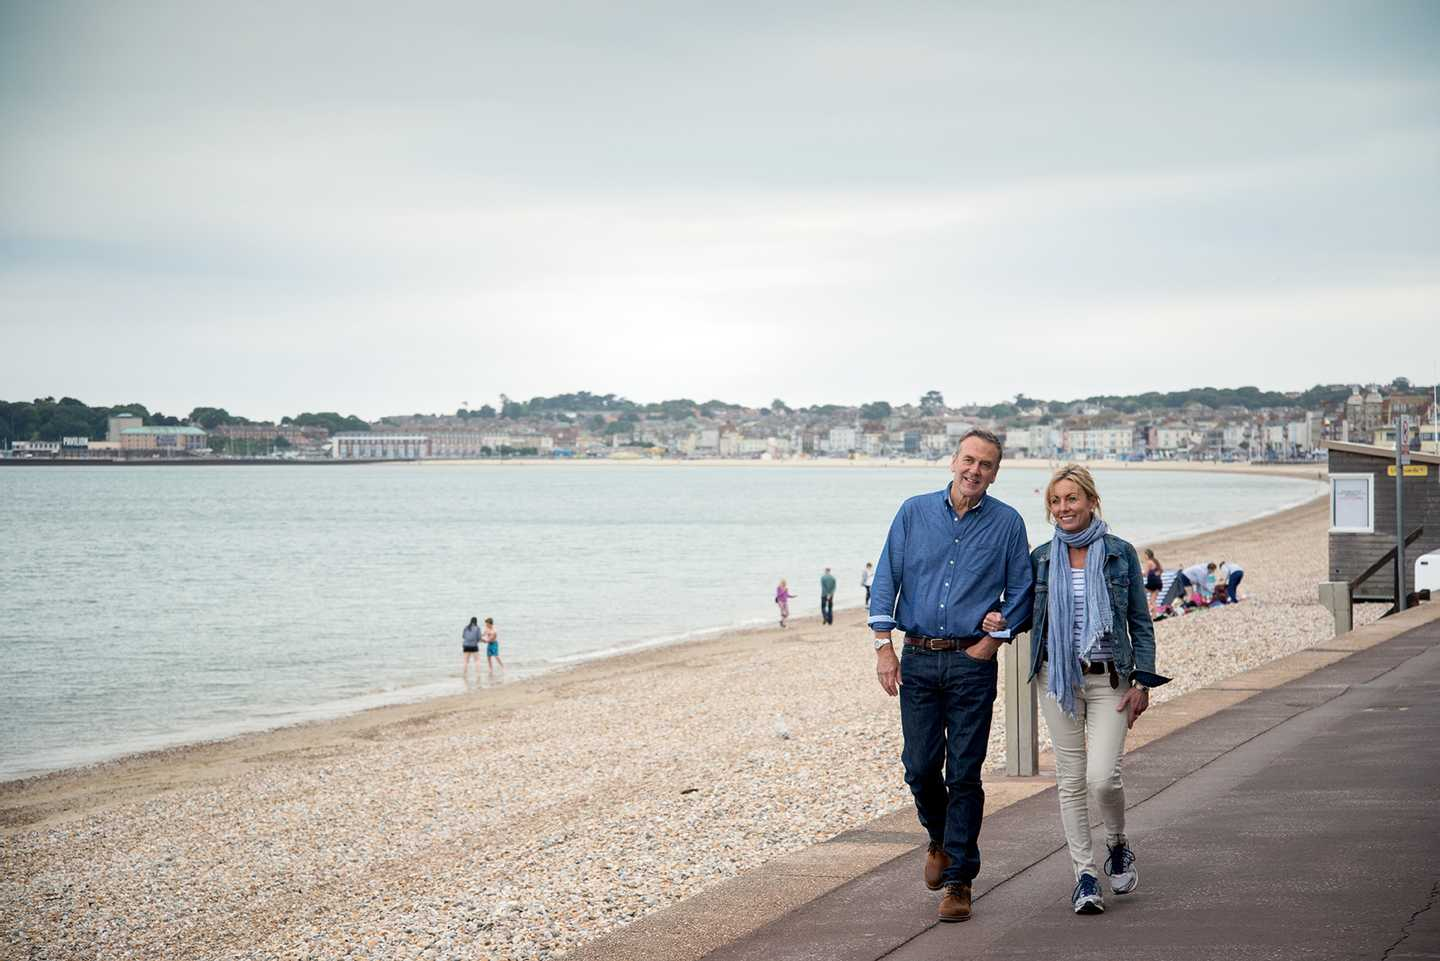 Guests walking along the promenade at Weymouth Beach, which was voted the UK's top beach in 2017